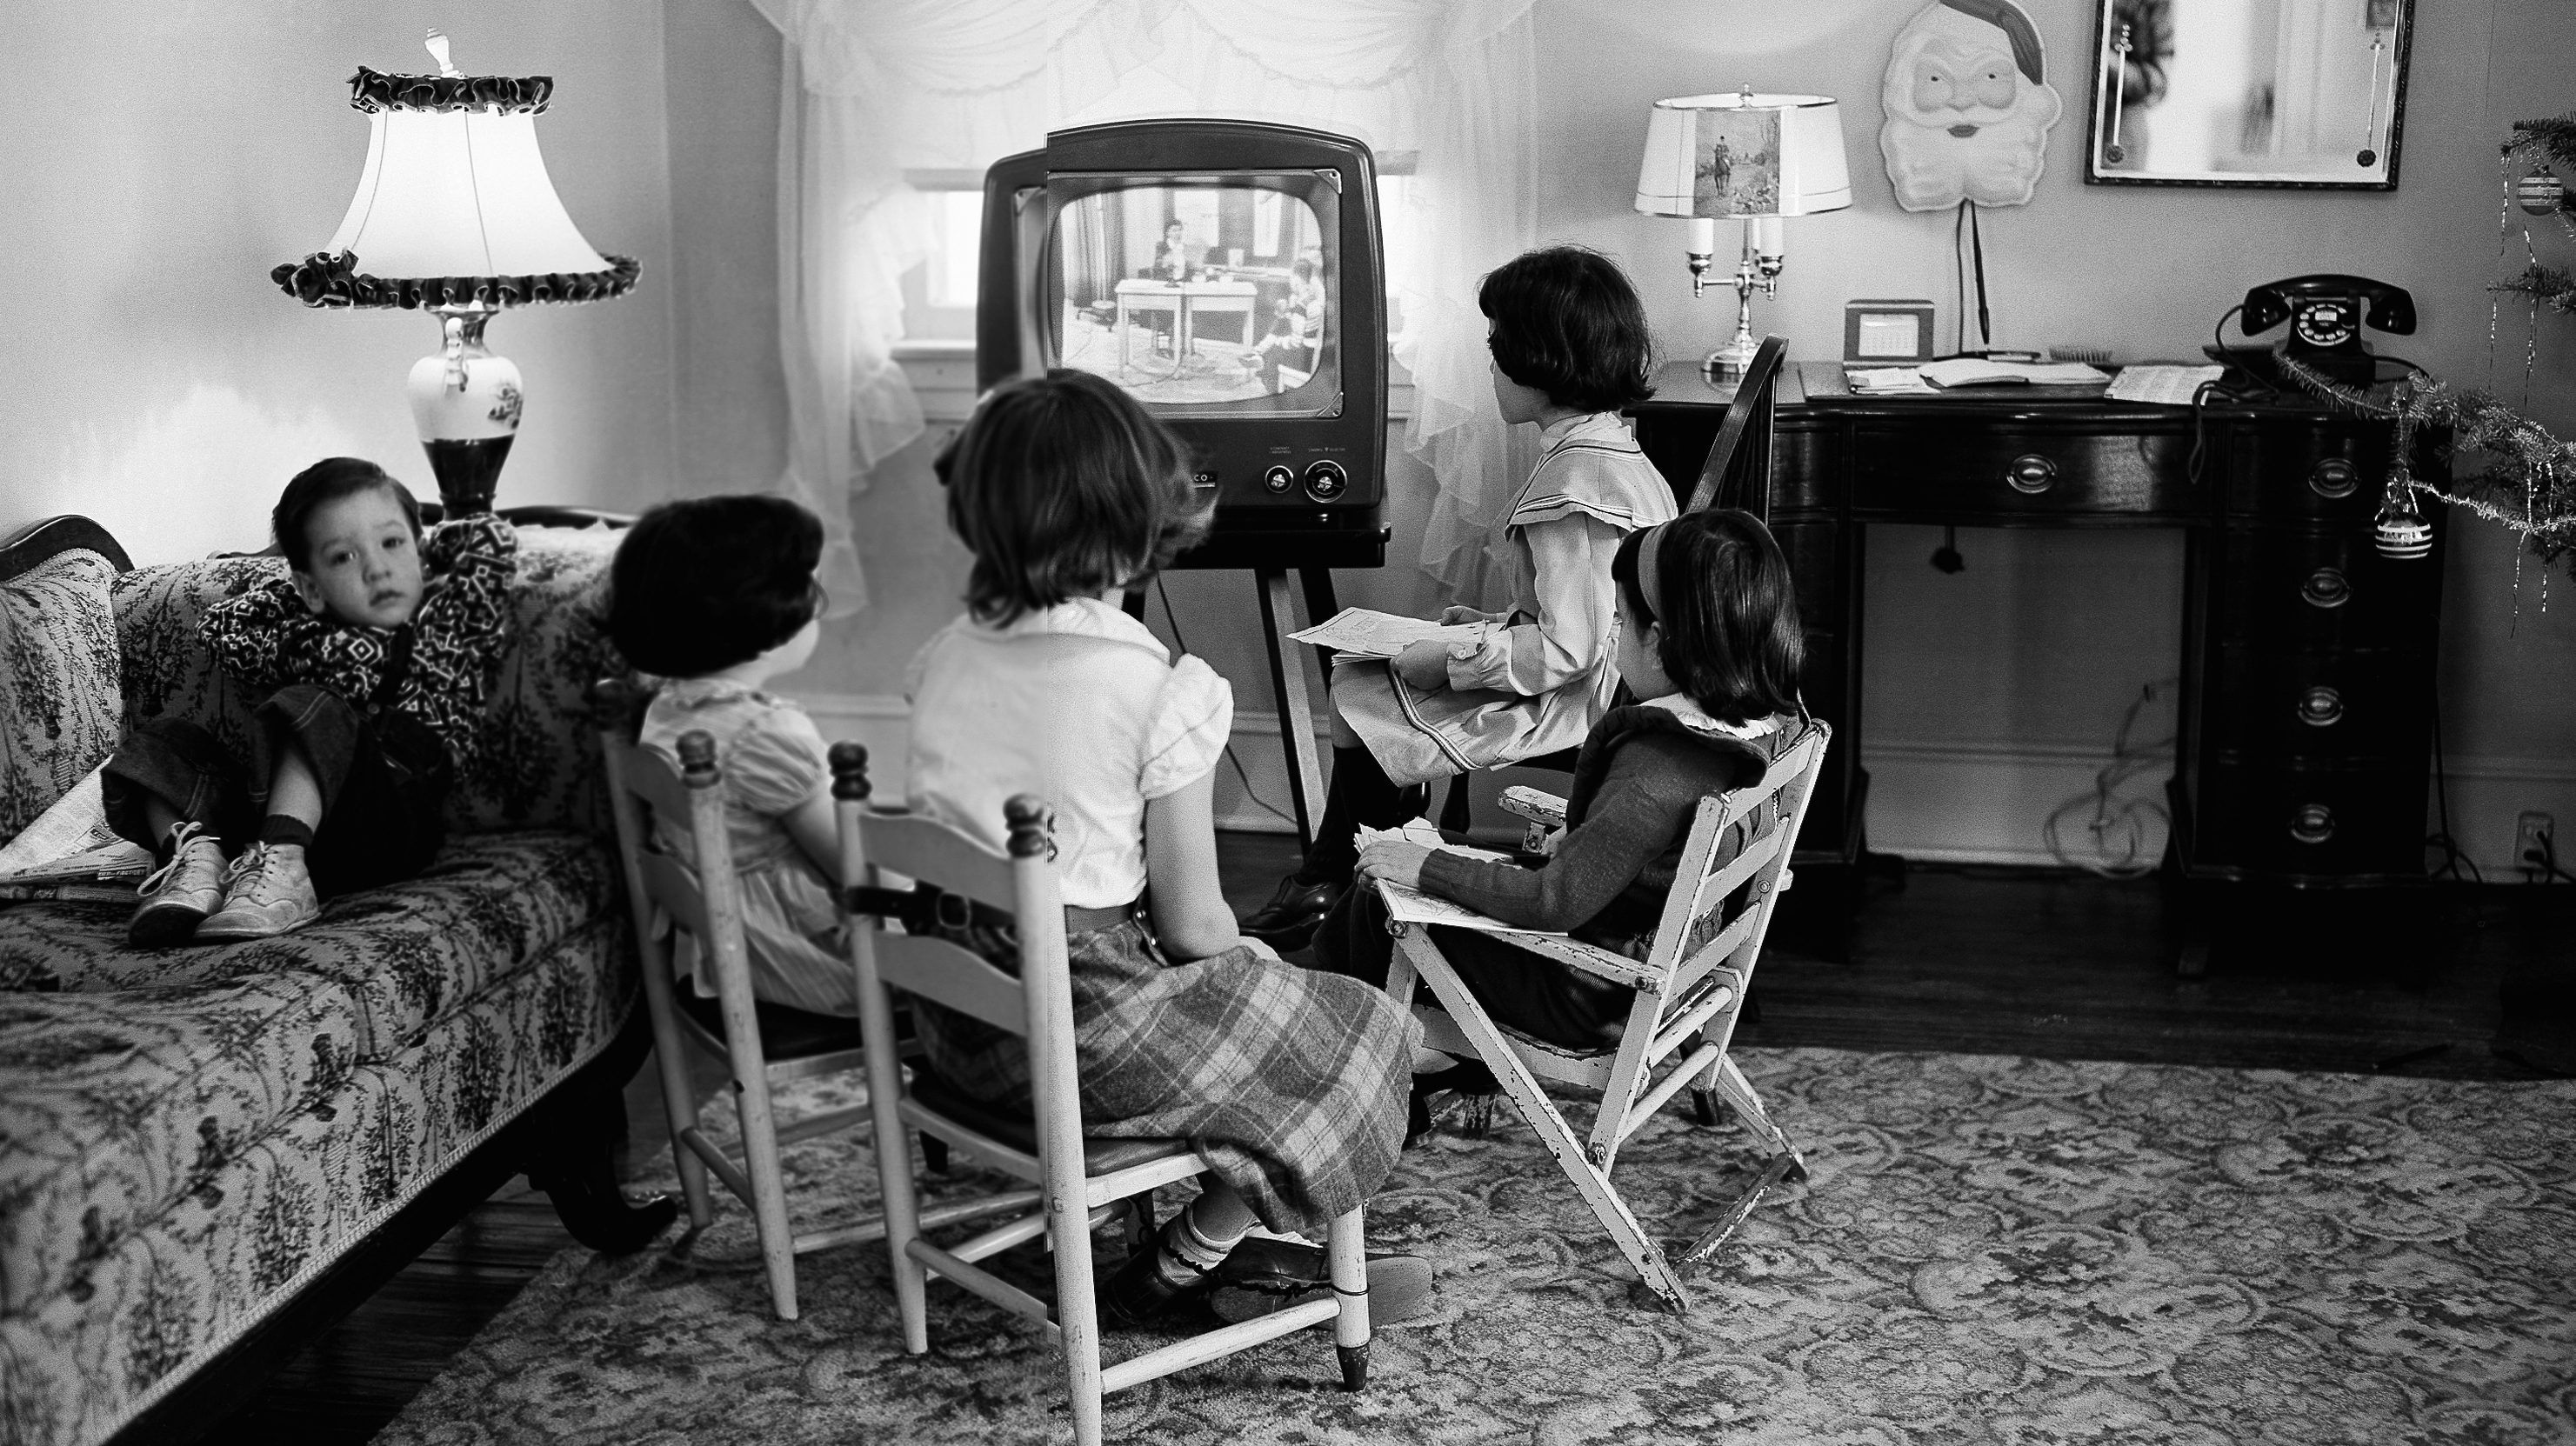 FILE - In this Jan. 6, 1953, file photo, four school children watch a teacher giving them a lesson via television at home in Baltimore, Md. TV was key to the world baby boomers were born into: a newly modernized world whose every problem (with the possible exception of the Cold War) seemed to promise an available solution. Polio would be cured! Man would go into space! Even African-Americans, oppressed for so long, had new reason for hope. TV chronicled this bracing wave of wonder and potential, and built upon it as an essential part of what distinguished boomers: They were pampered and privileged and ushered toward a sure-to-be-glorious future. (AP Photo, File)